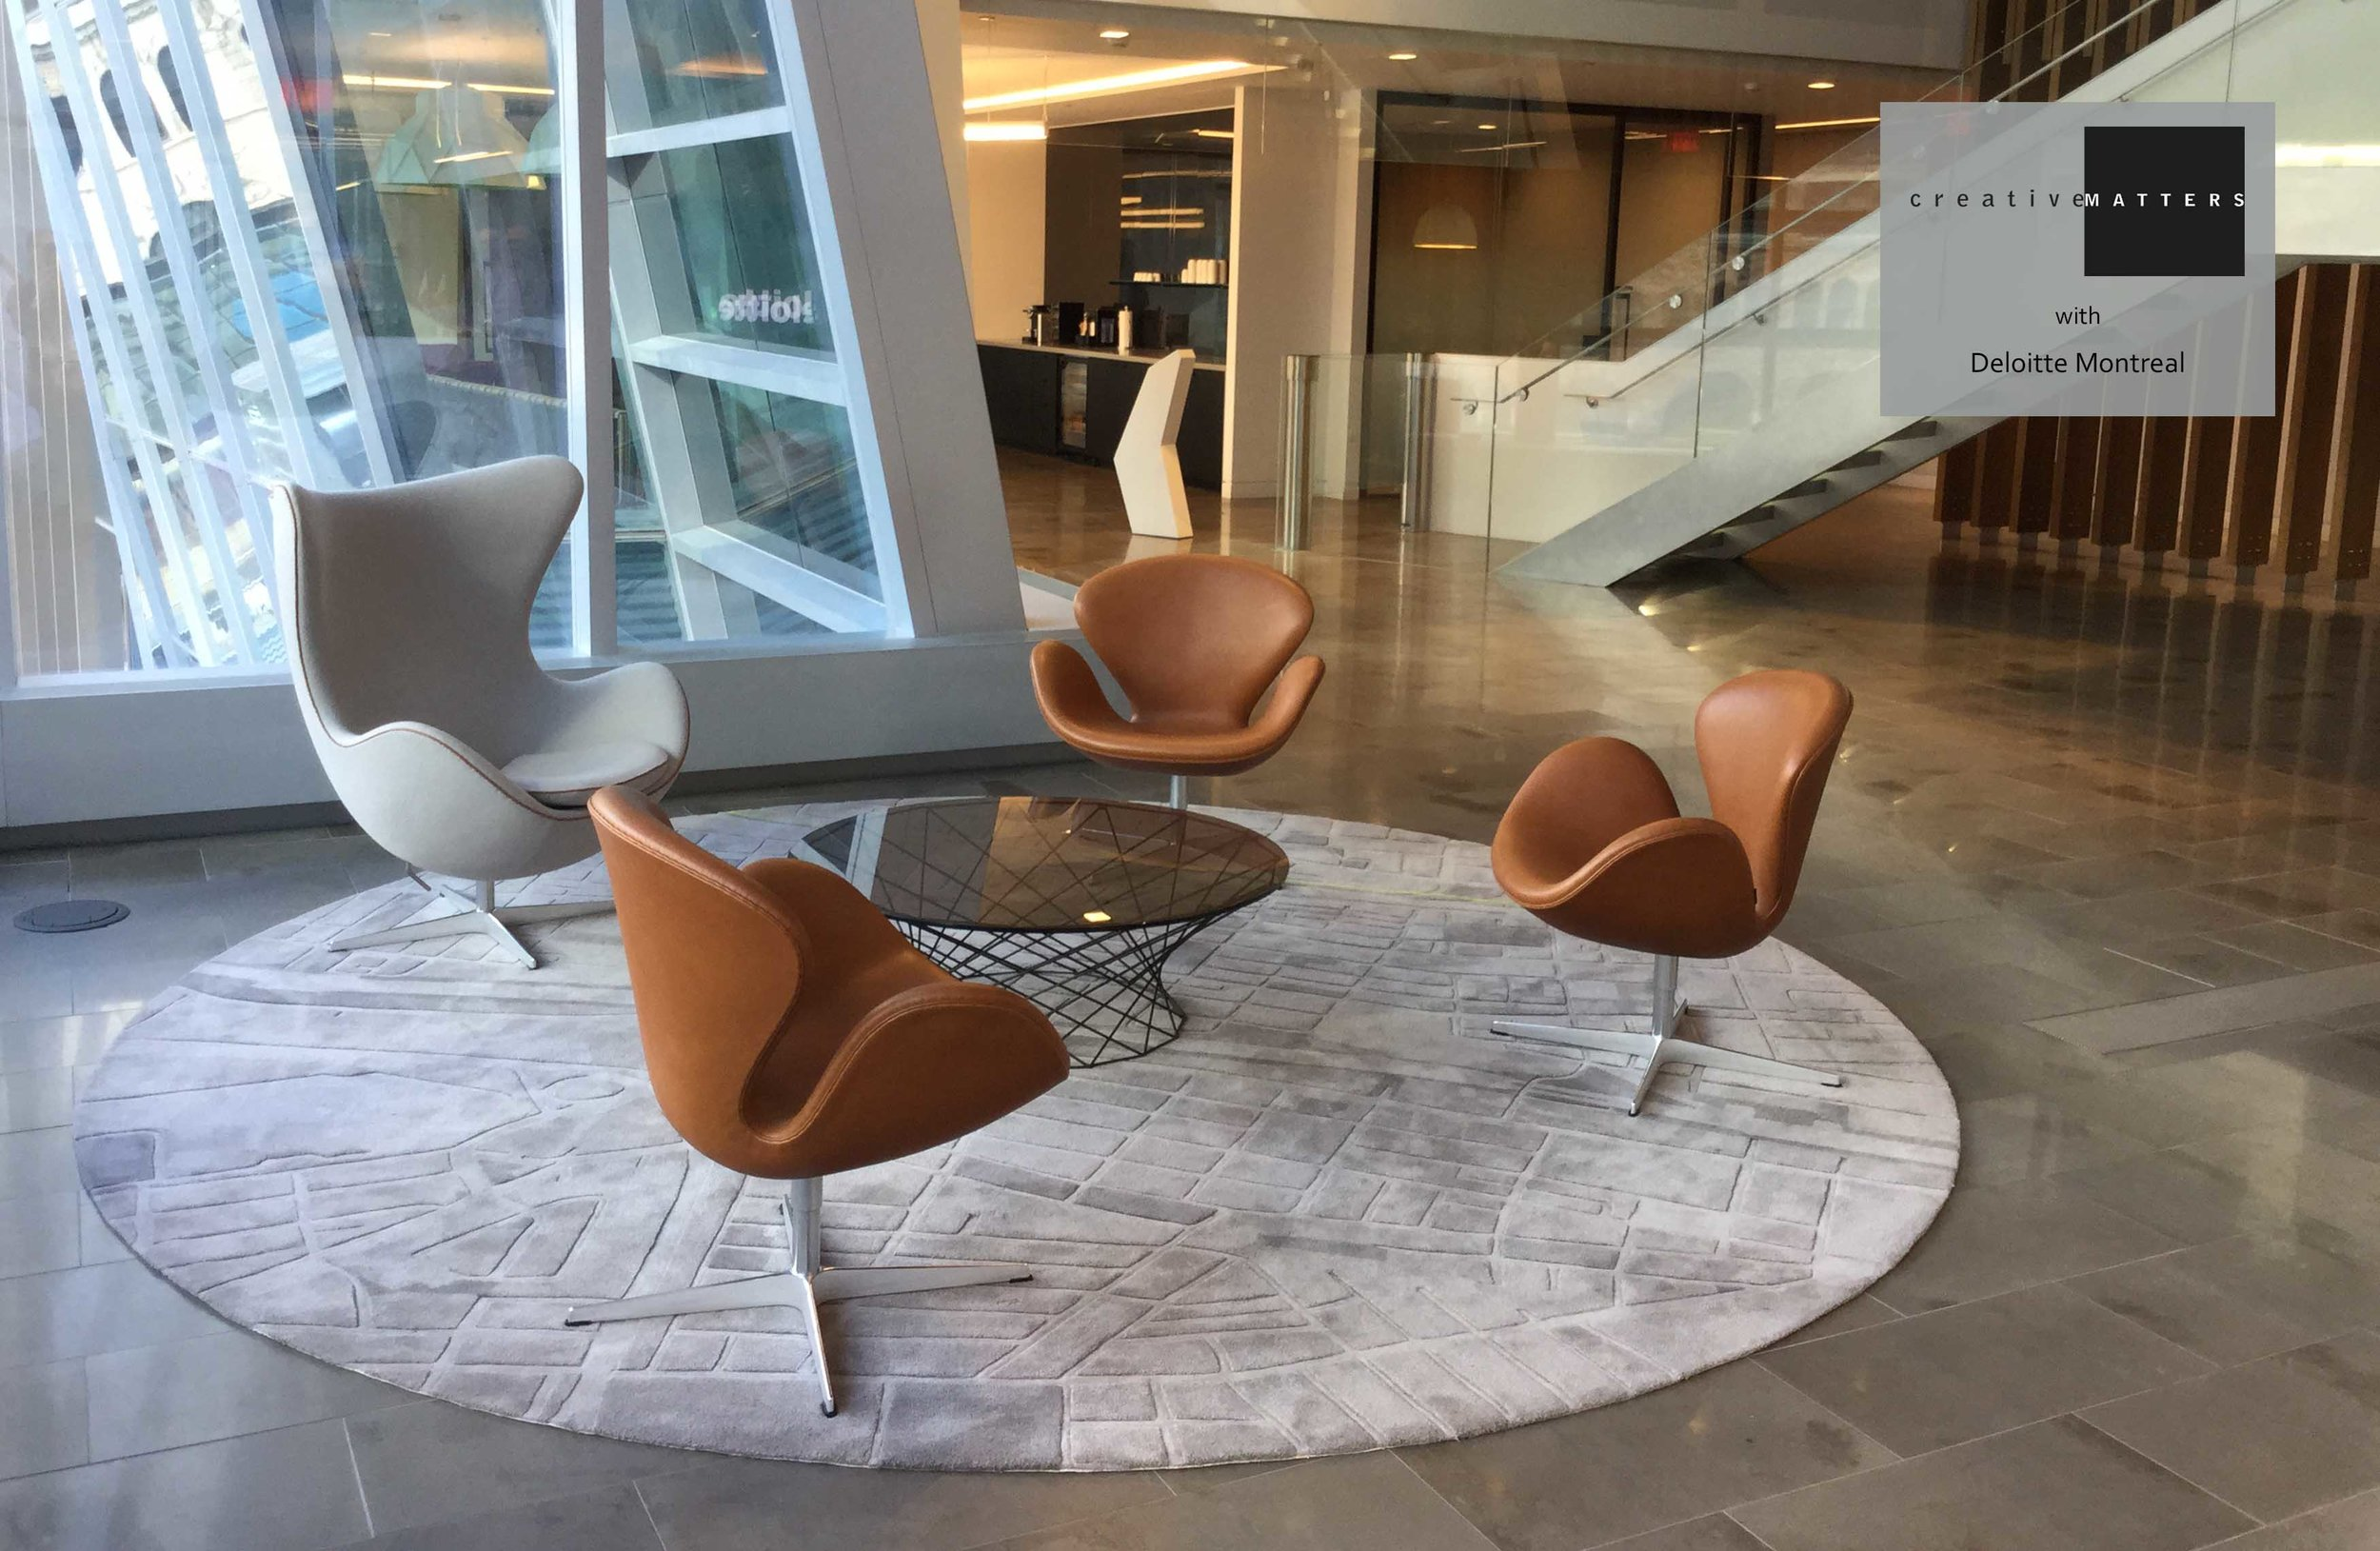 Sophisticated but simple at first glance, this circular piece is the smaller partner of a dramatic two-rug presentation in the five-story atrium of La Tour Deloitte in Montreal unveiled in the fall of 2015. In both rugs, a variety of blend combinations and pile heights accurately replicate a detailed map of Montreal.  The rug design also speaks to the tower's heritage inclusion of former rail station elements with vivid green defining the railway line against the grey background. And subtly, Deloitte's green dot logo is incorporated to mark the location of the building itself.  Project: Two rugs for the lobby of La Tour Deloitte, Montreal Interior Designer: Arney Fender Katsalids, U.K. Rug: 100% wool, handtufted in Thailand CMI Designer: Clémence Hardelay